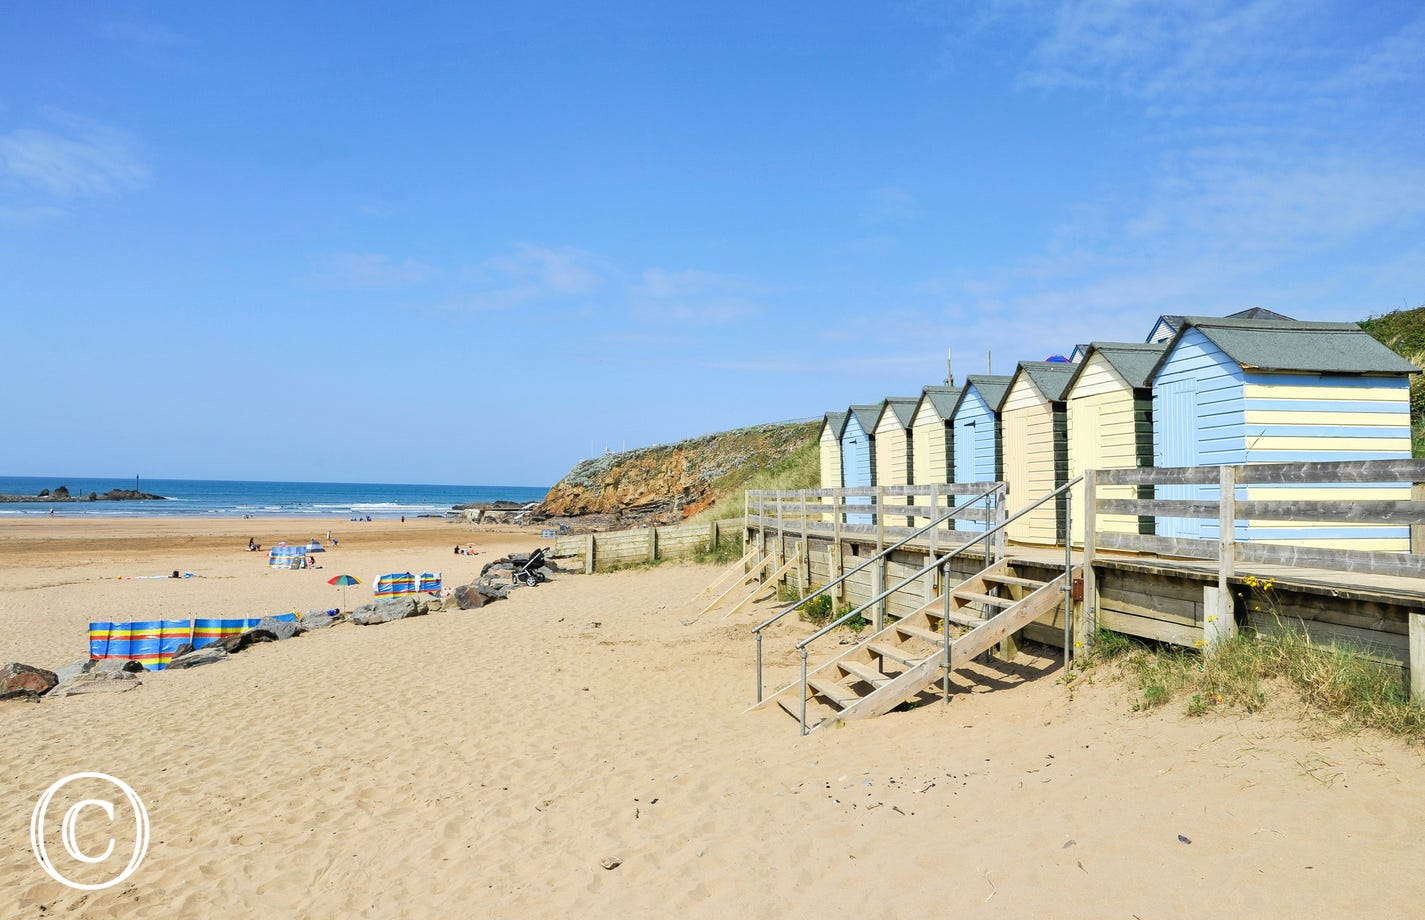 For a day out on the beach the Summerleaze beach at Bude in Cornwall is a 30 minute drive away